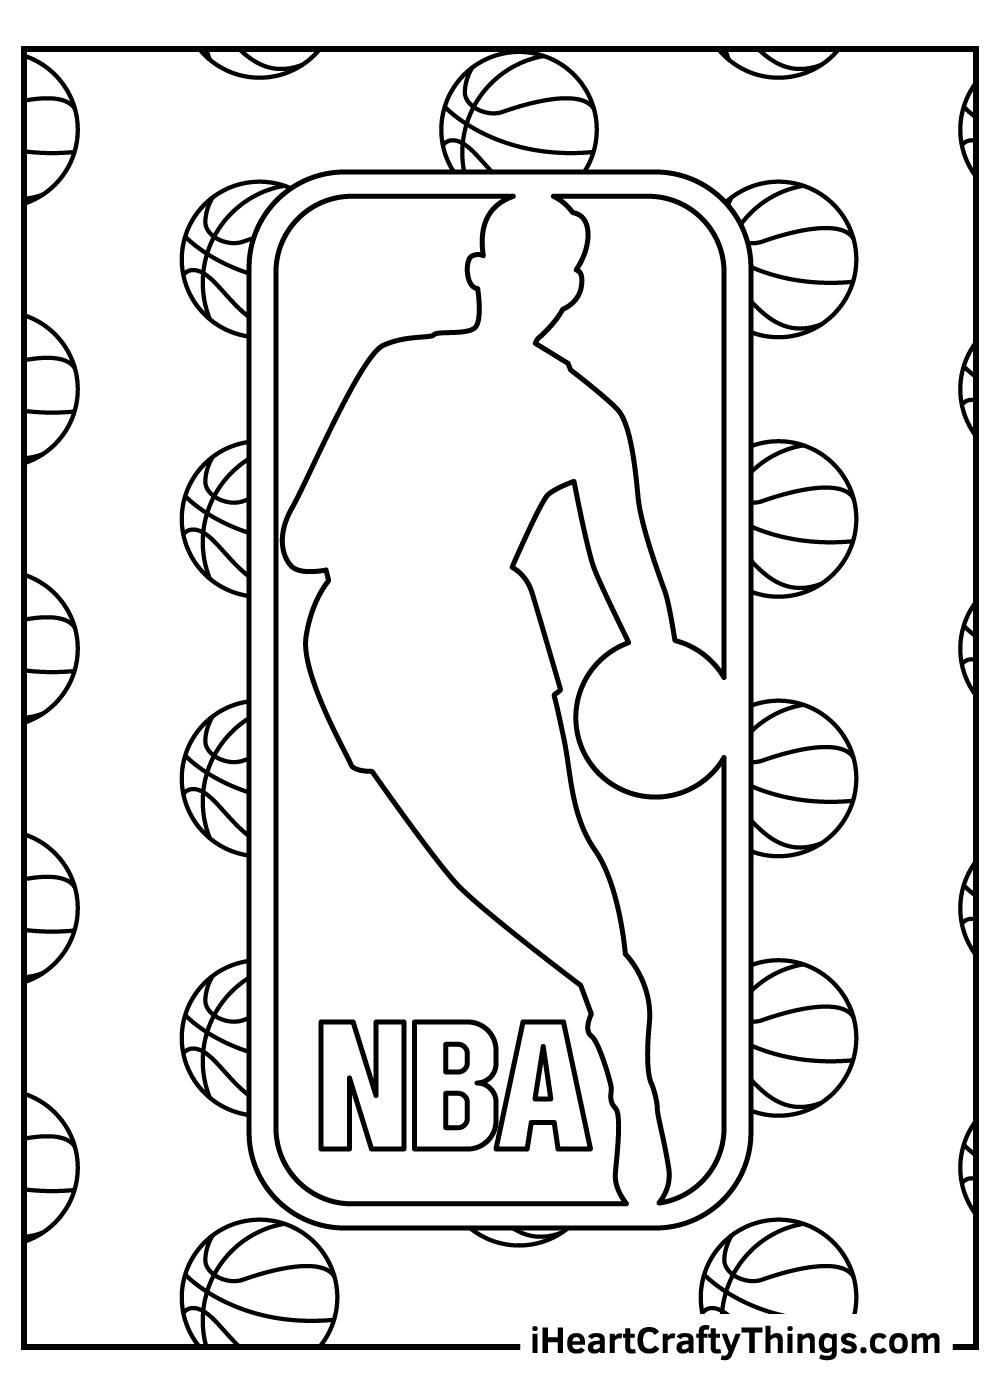 NBA coloring pages logo free printable